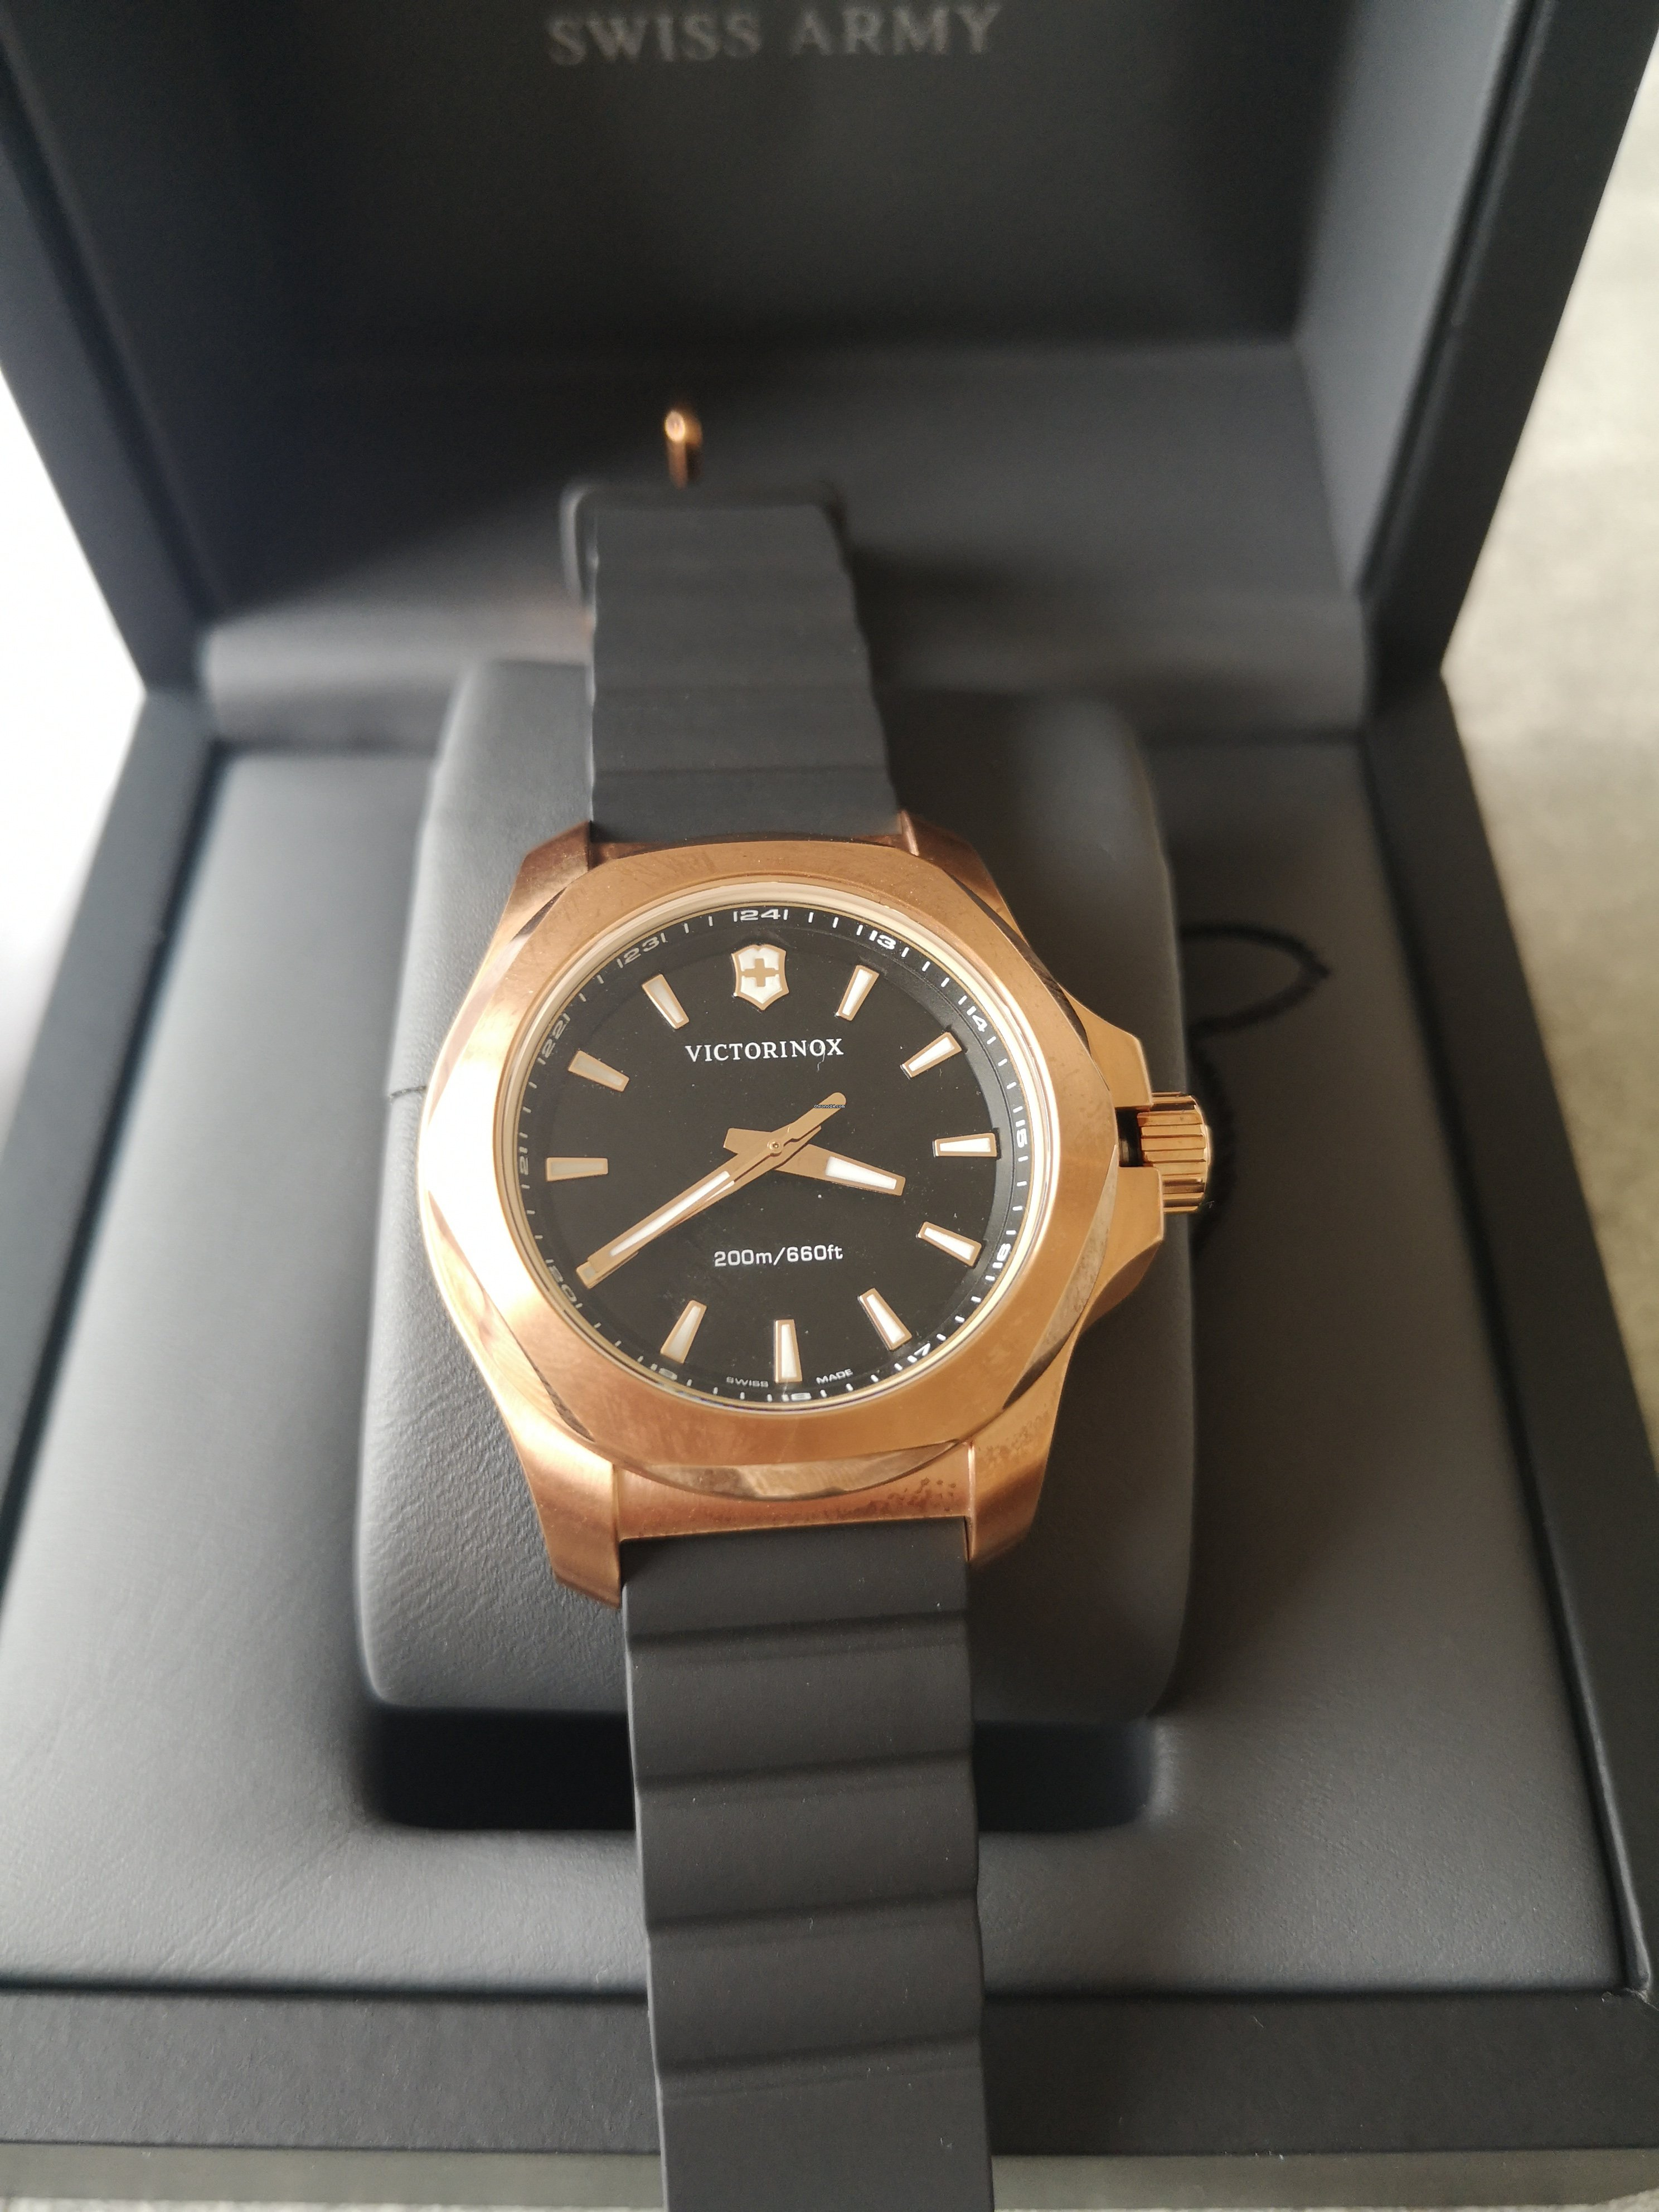 Image result for Victorinox I.N.O.X. gold